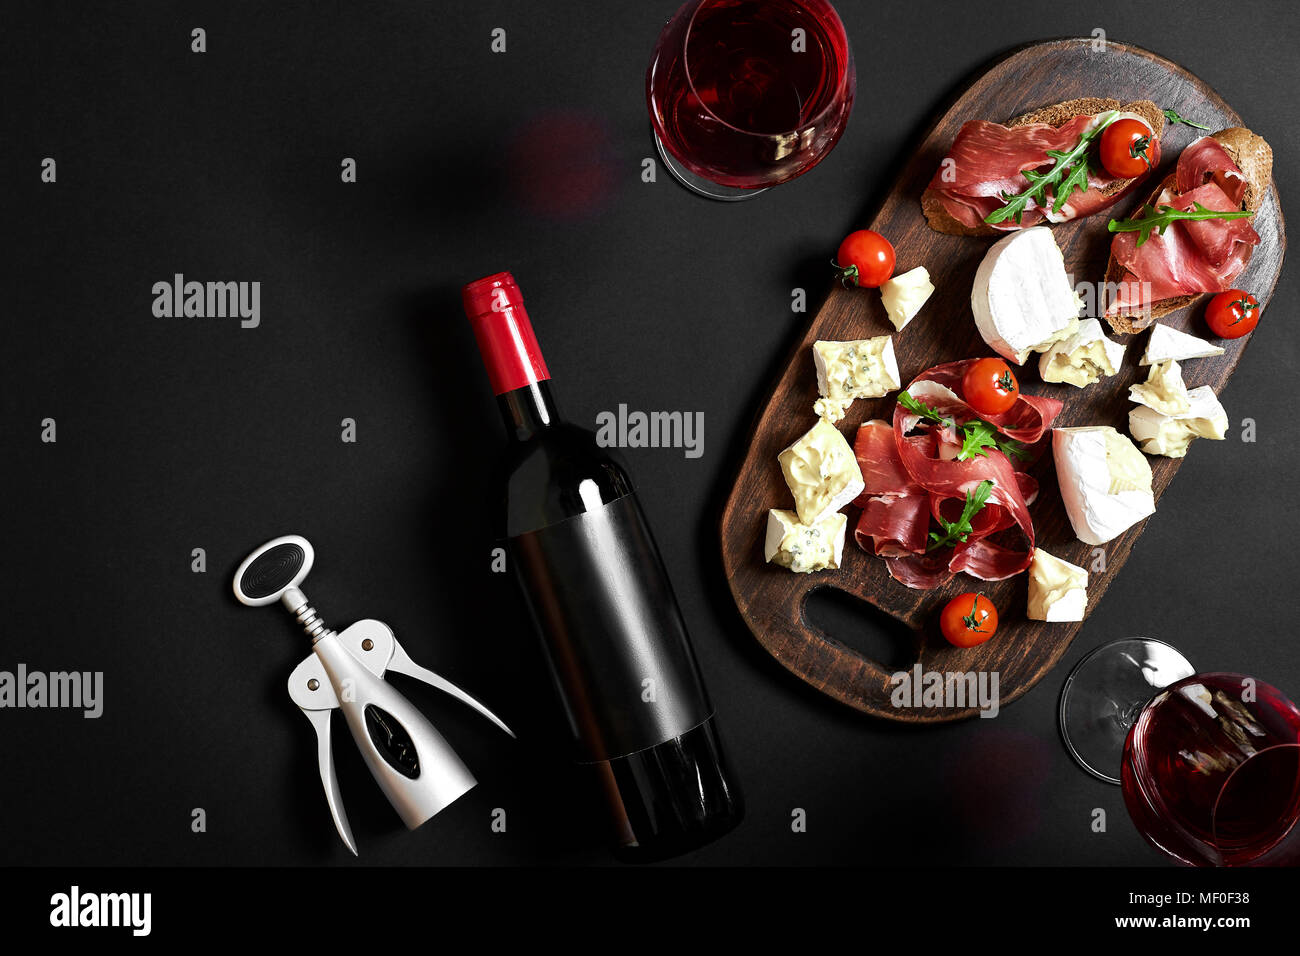 Delicious appetizer to wine - ham, cheese, baguette slices, tomatoes, served on a wooden board, and glass with red wine on black surface - Stock Image